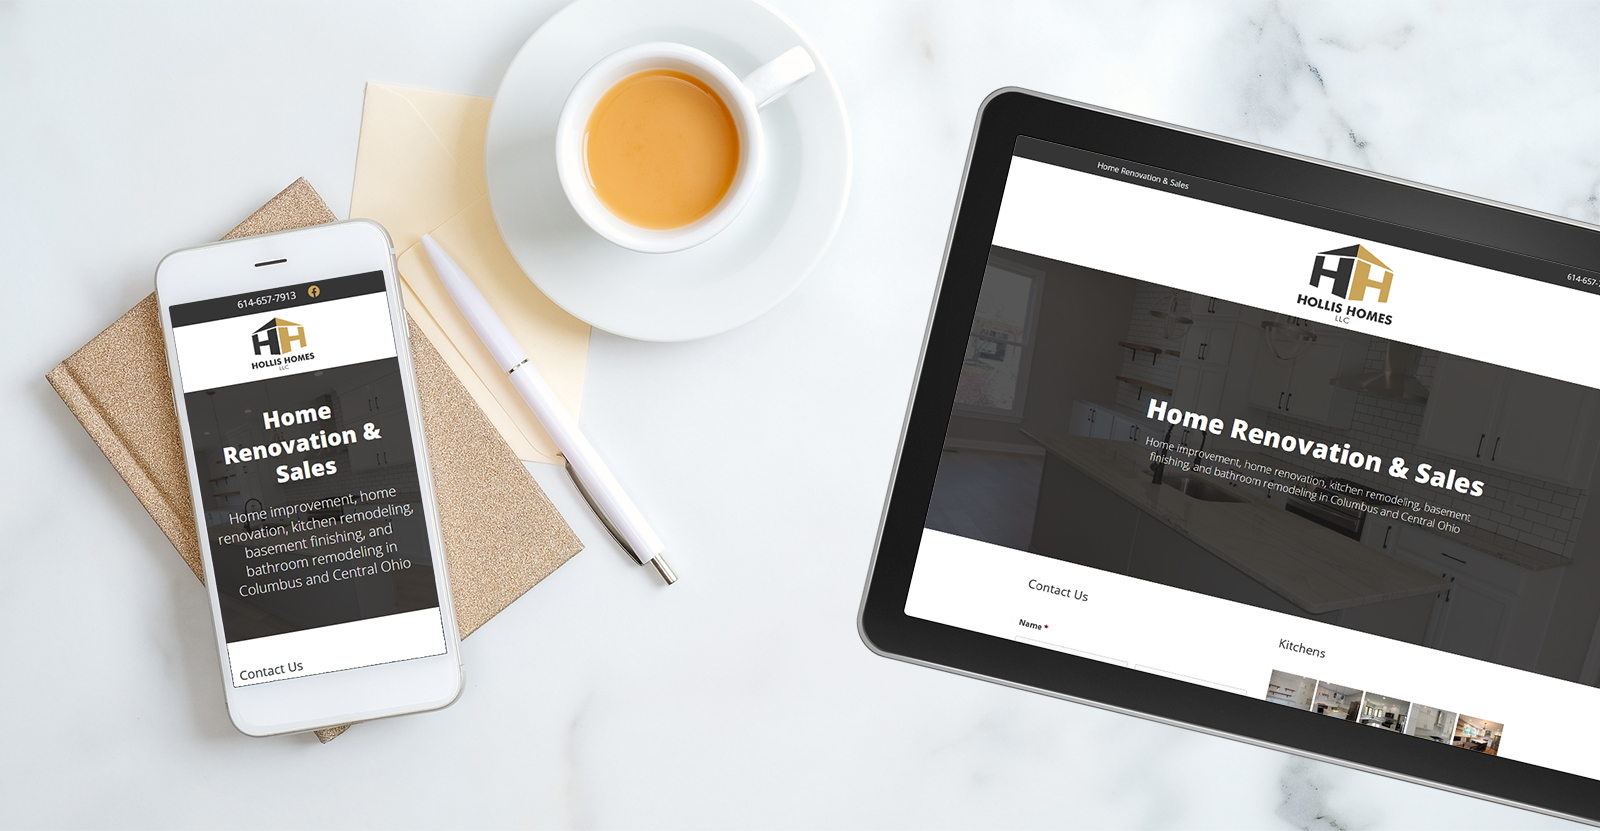 Hollis Homes website on phone and tablet